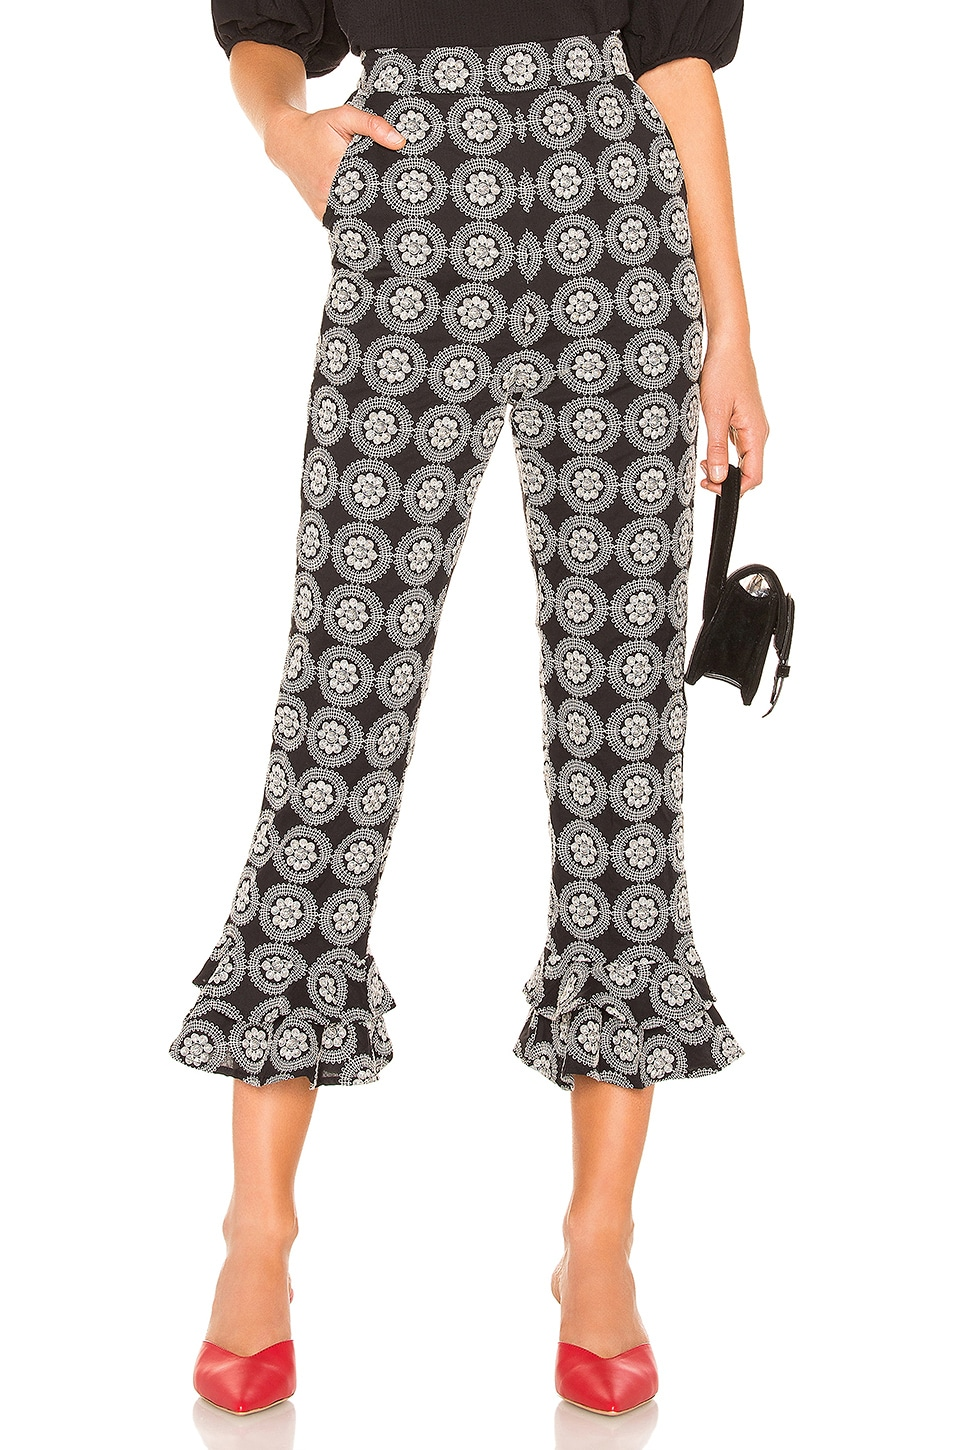 Tularosa Demi Pant in Black & Ivory